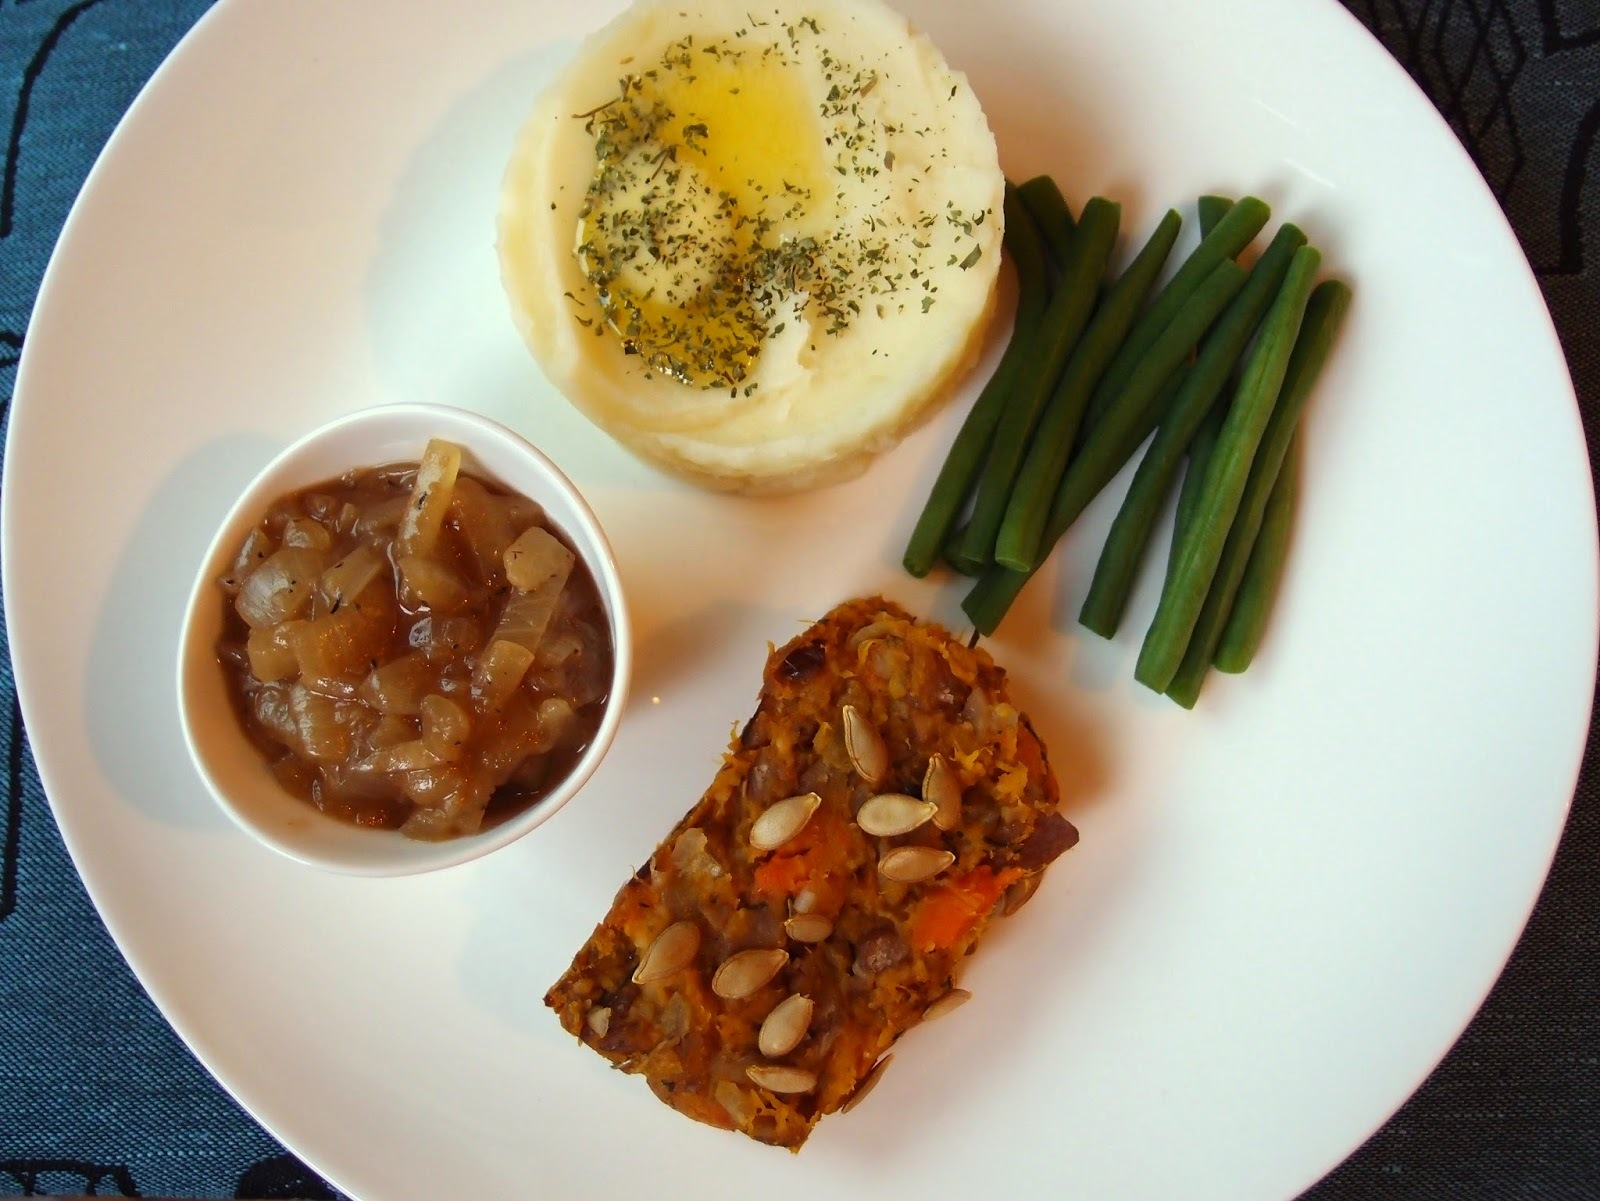 Queen squash nut roast